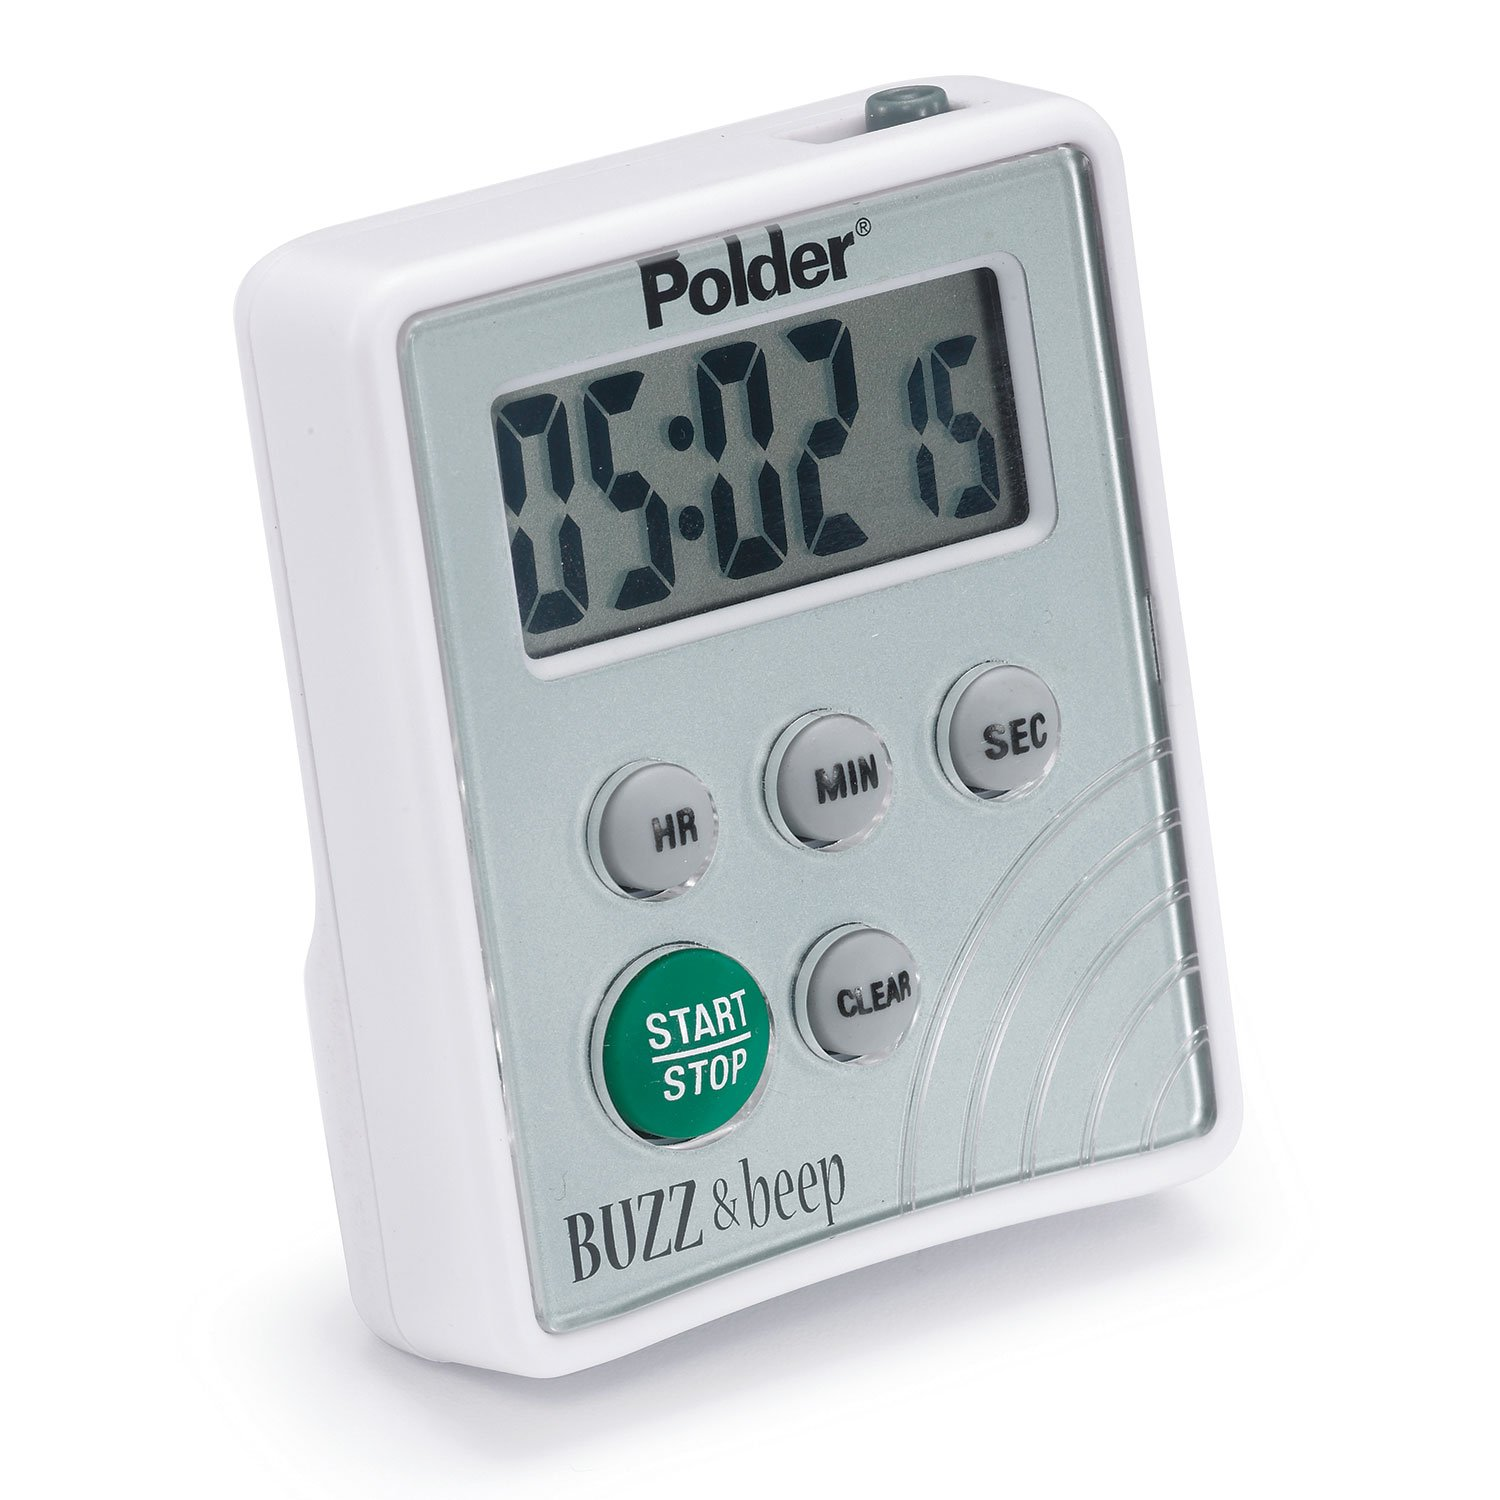 Amazon.com: Polder TMR-2125 Digital Buzz and Beep Timer with LCD ...